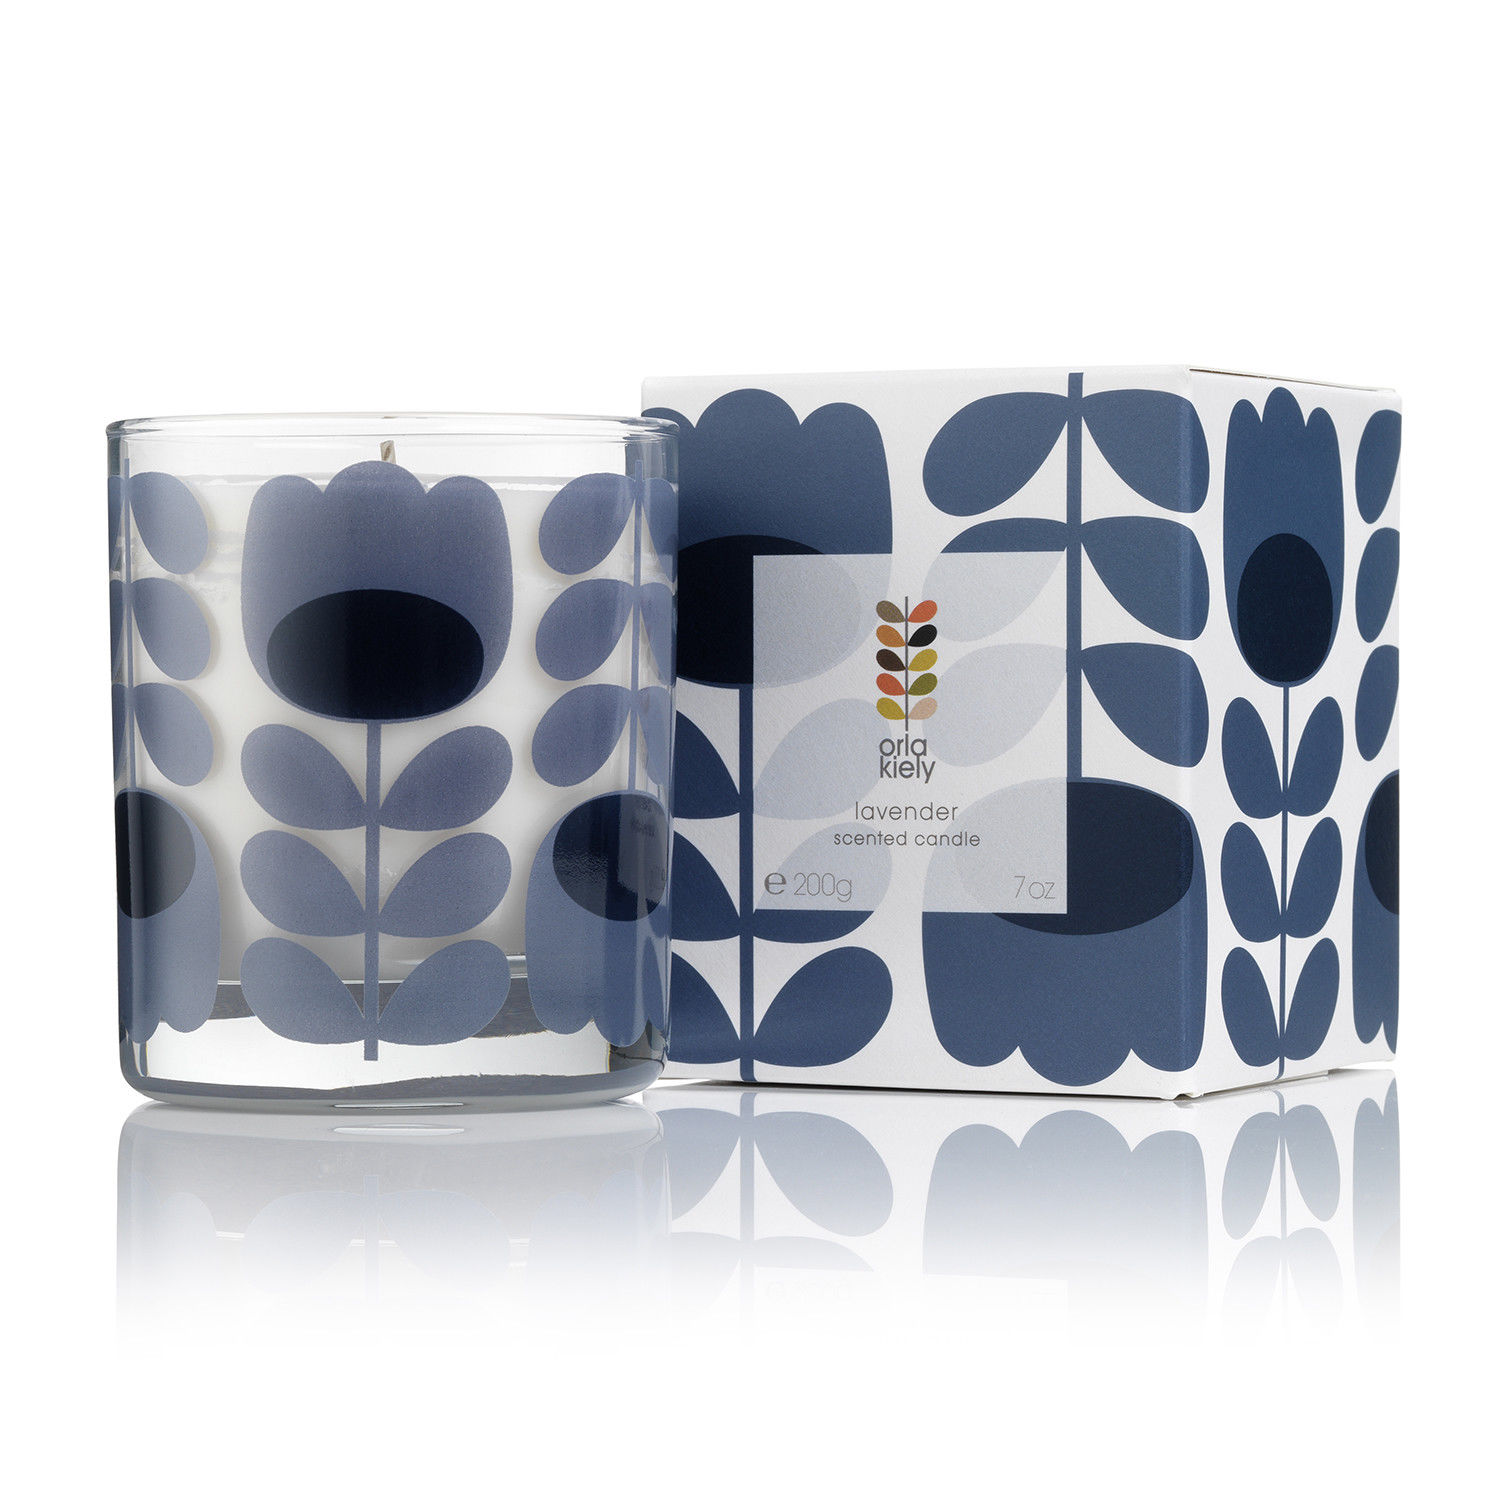 Orla Kiely – Lavender Scented Candle in Presentation Gift Box